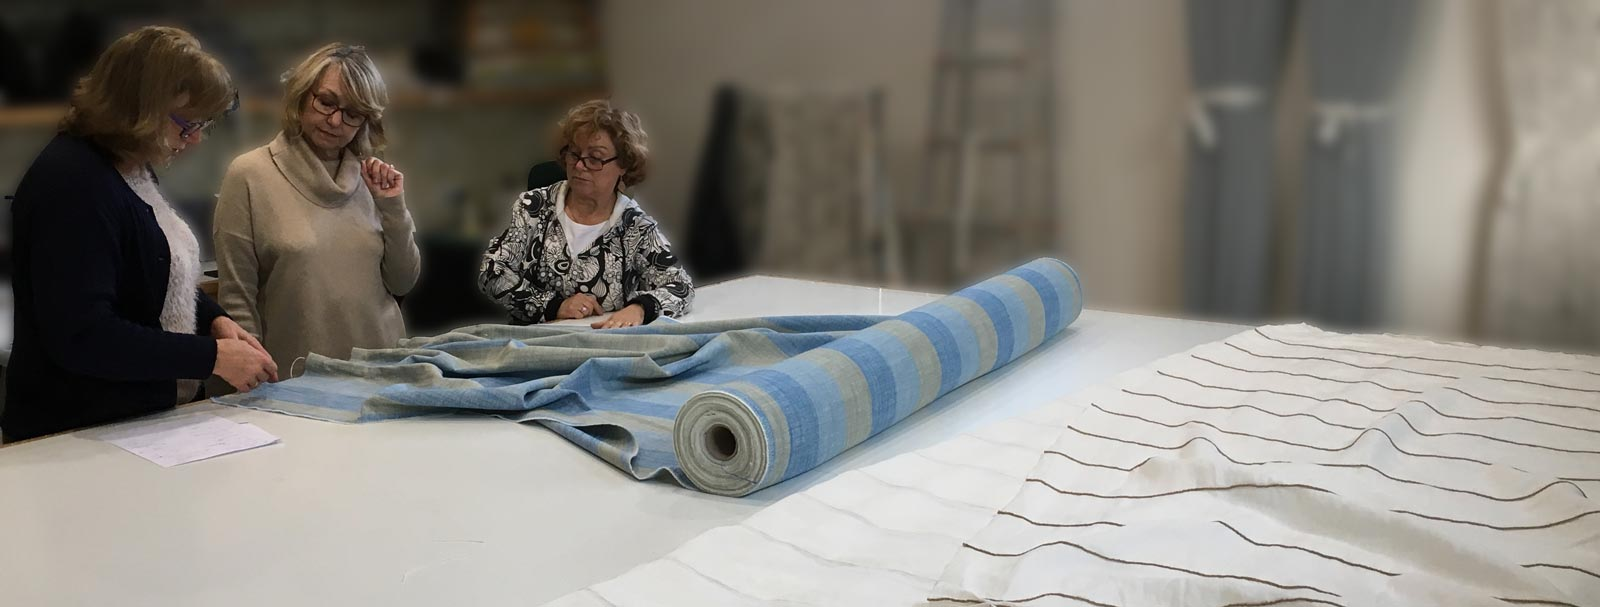 Curtain Making Algarve